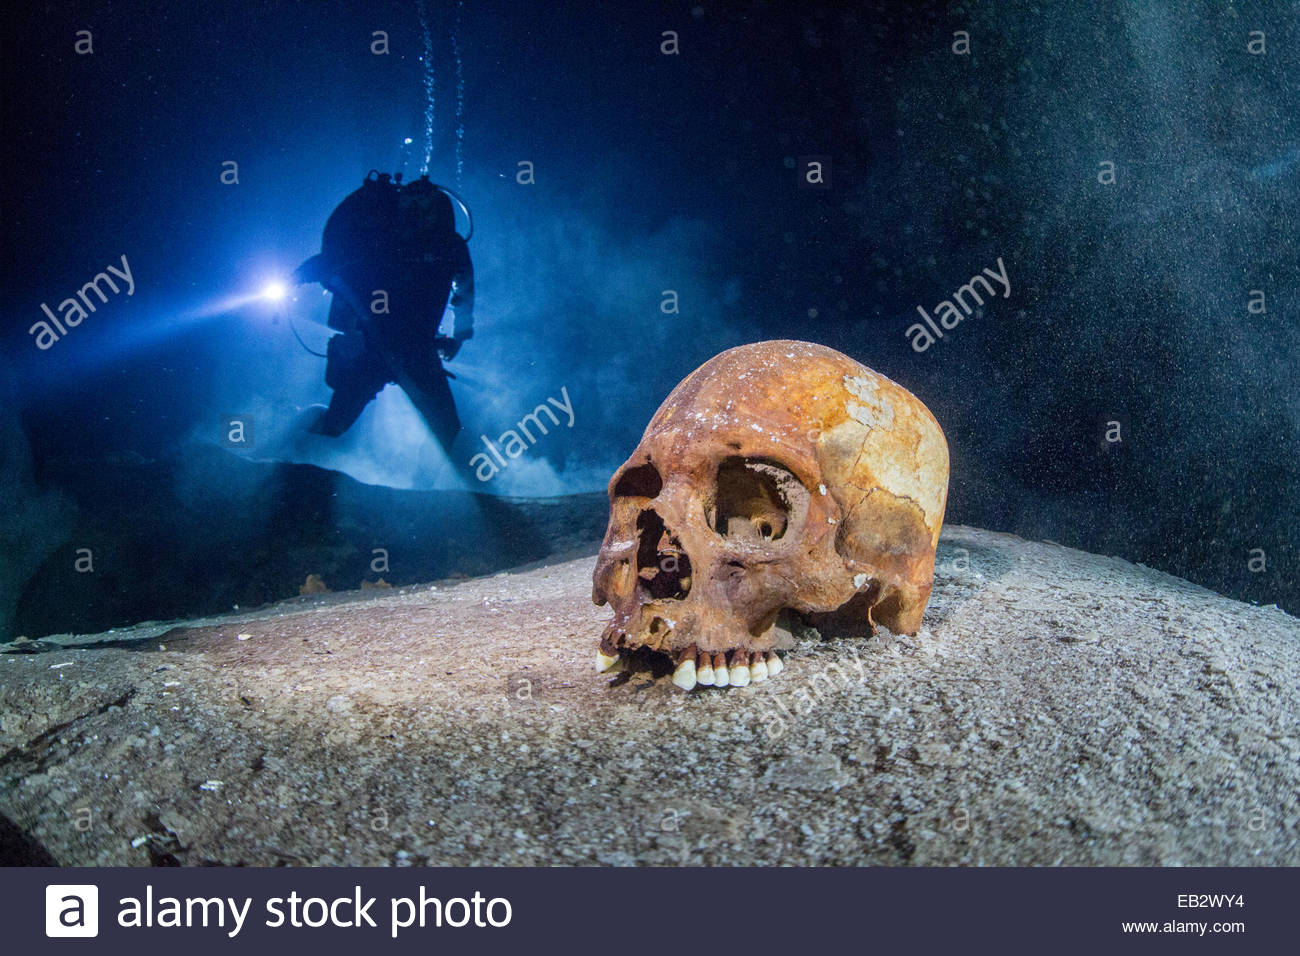 A Mayan skull found in a sacred cenote. - Stock Image